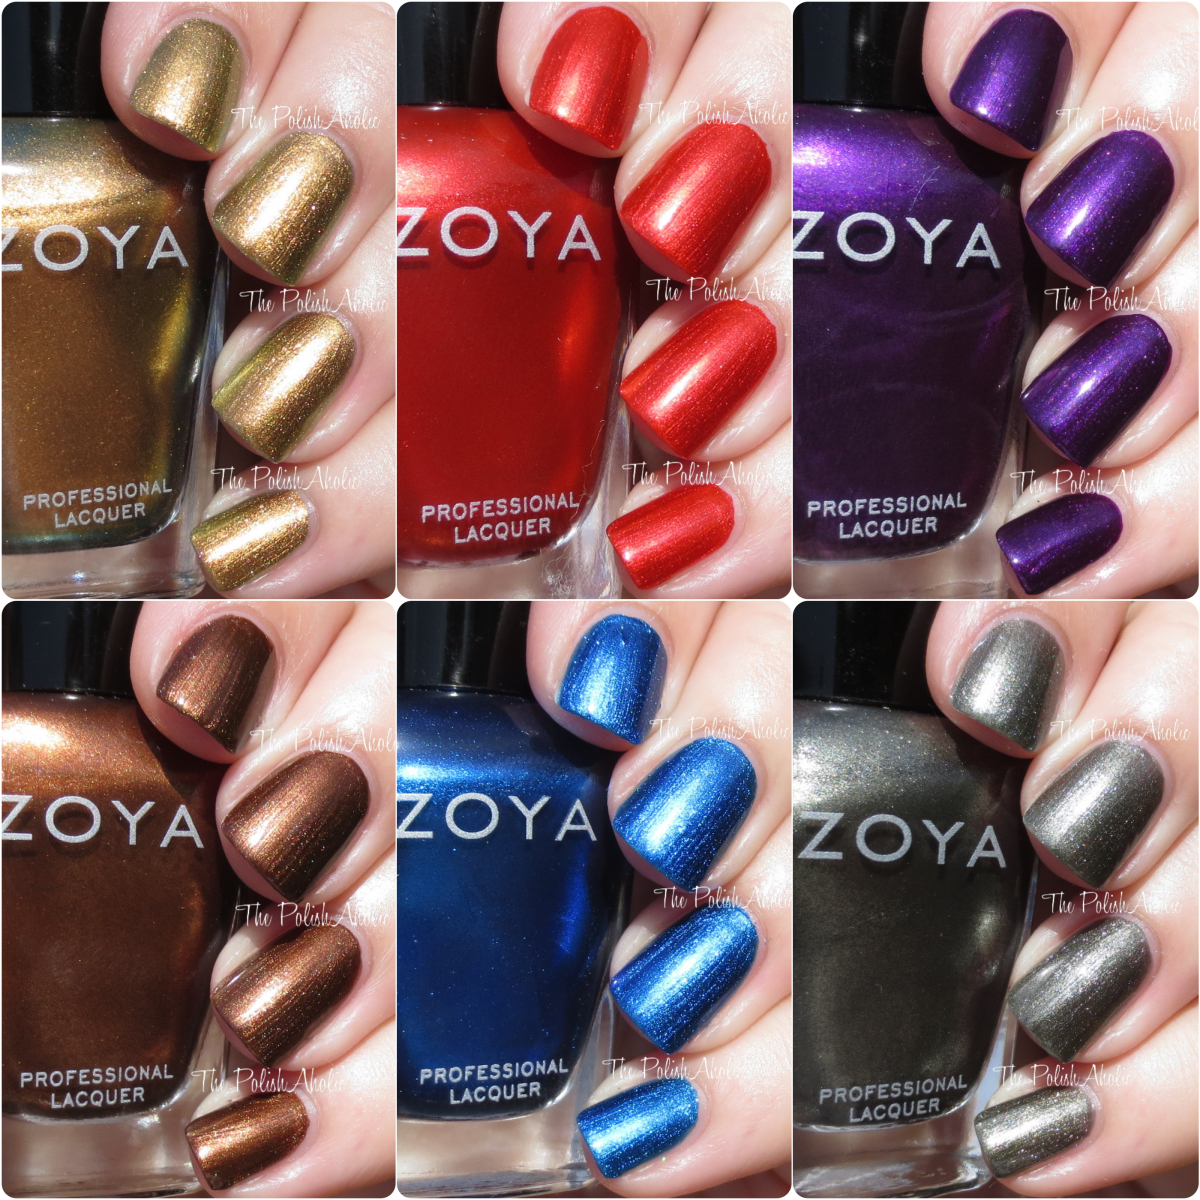 The PolishAholic: Zoya Fall 2015 Flair Collection Swatches & Review